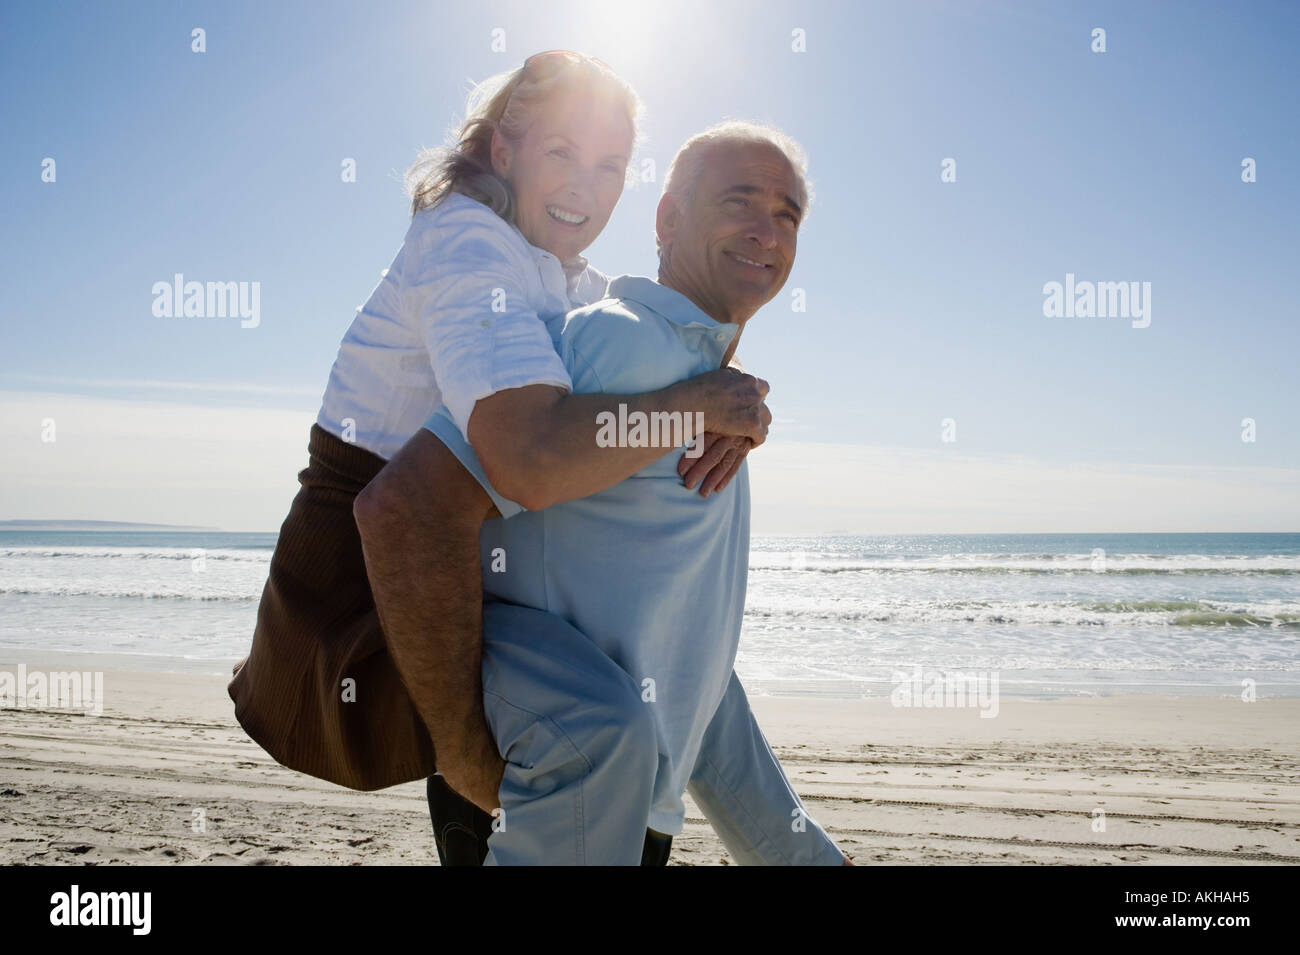 Senior man carrying woman on back - Stock Image